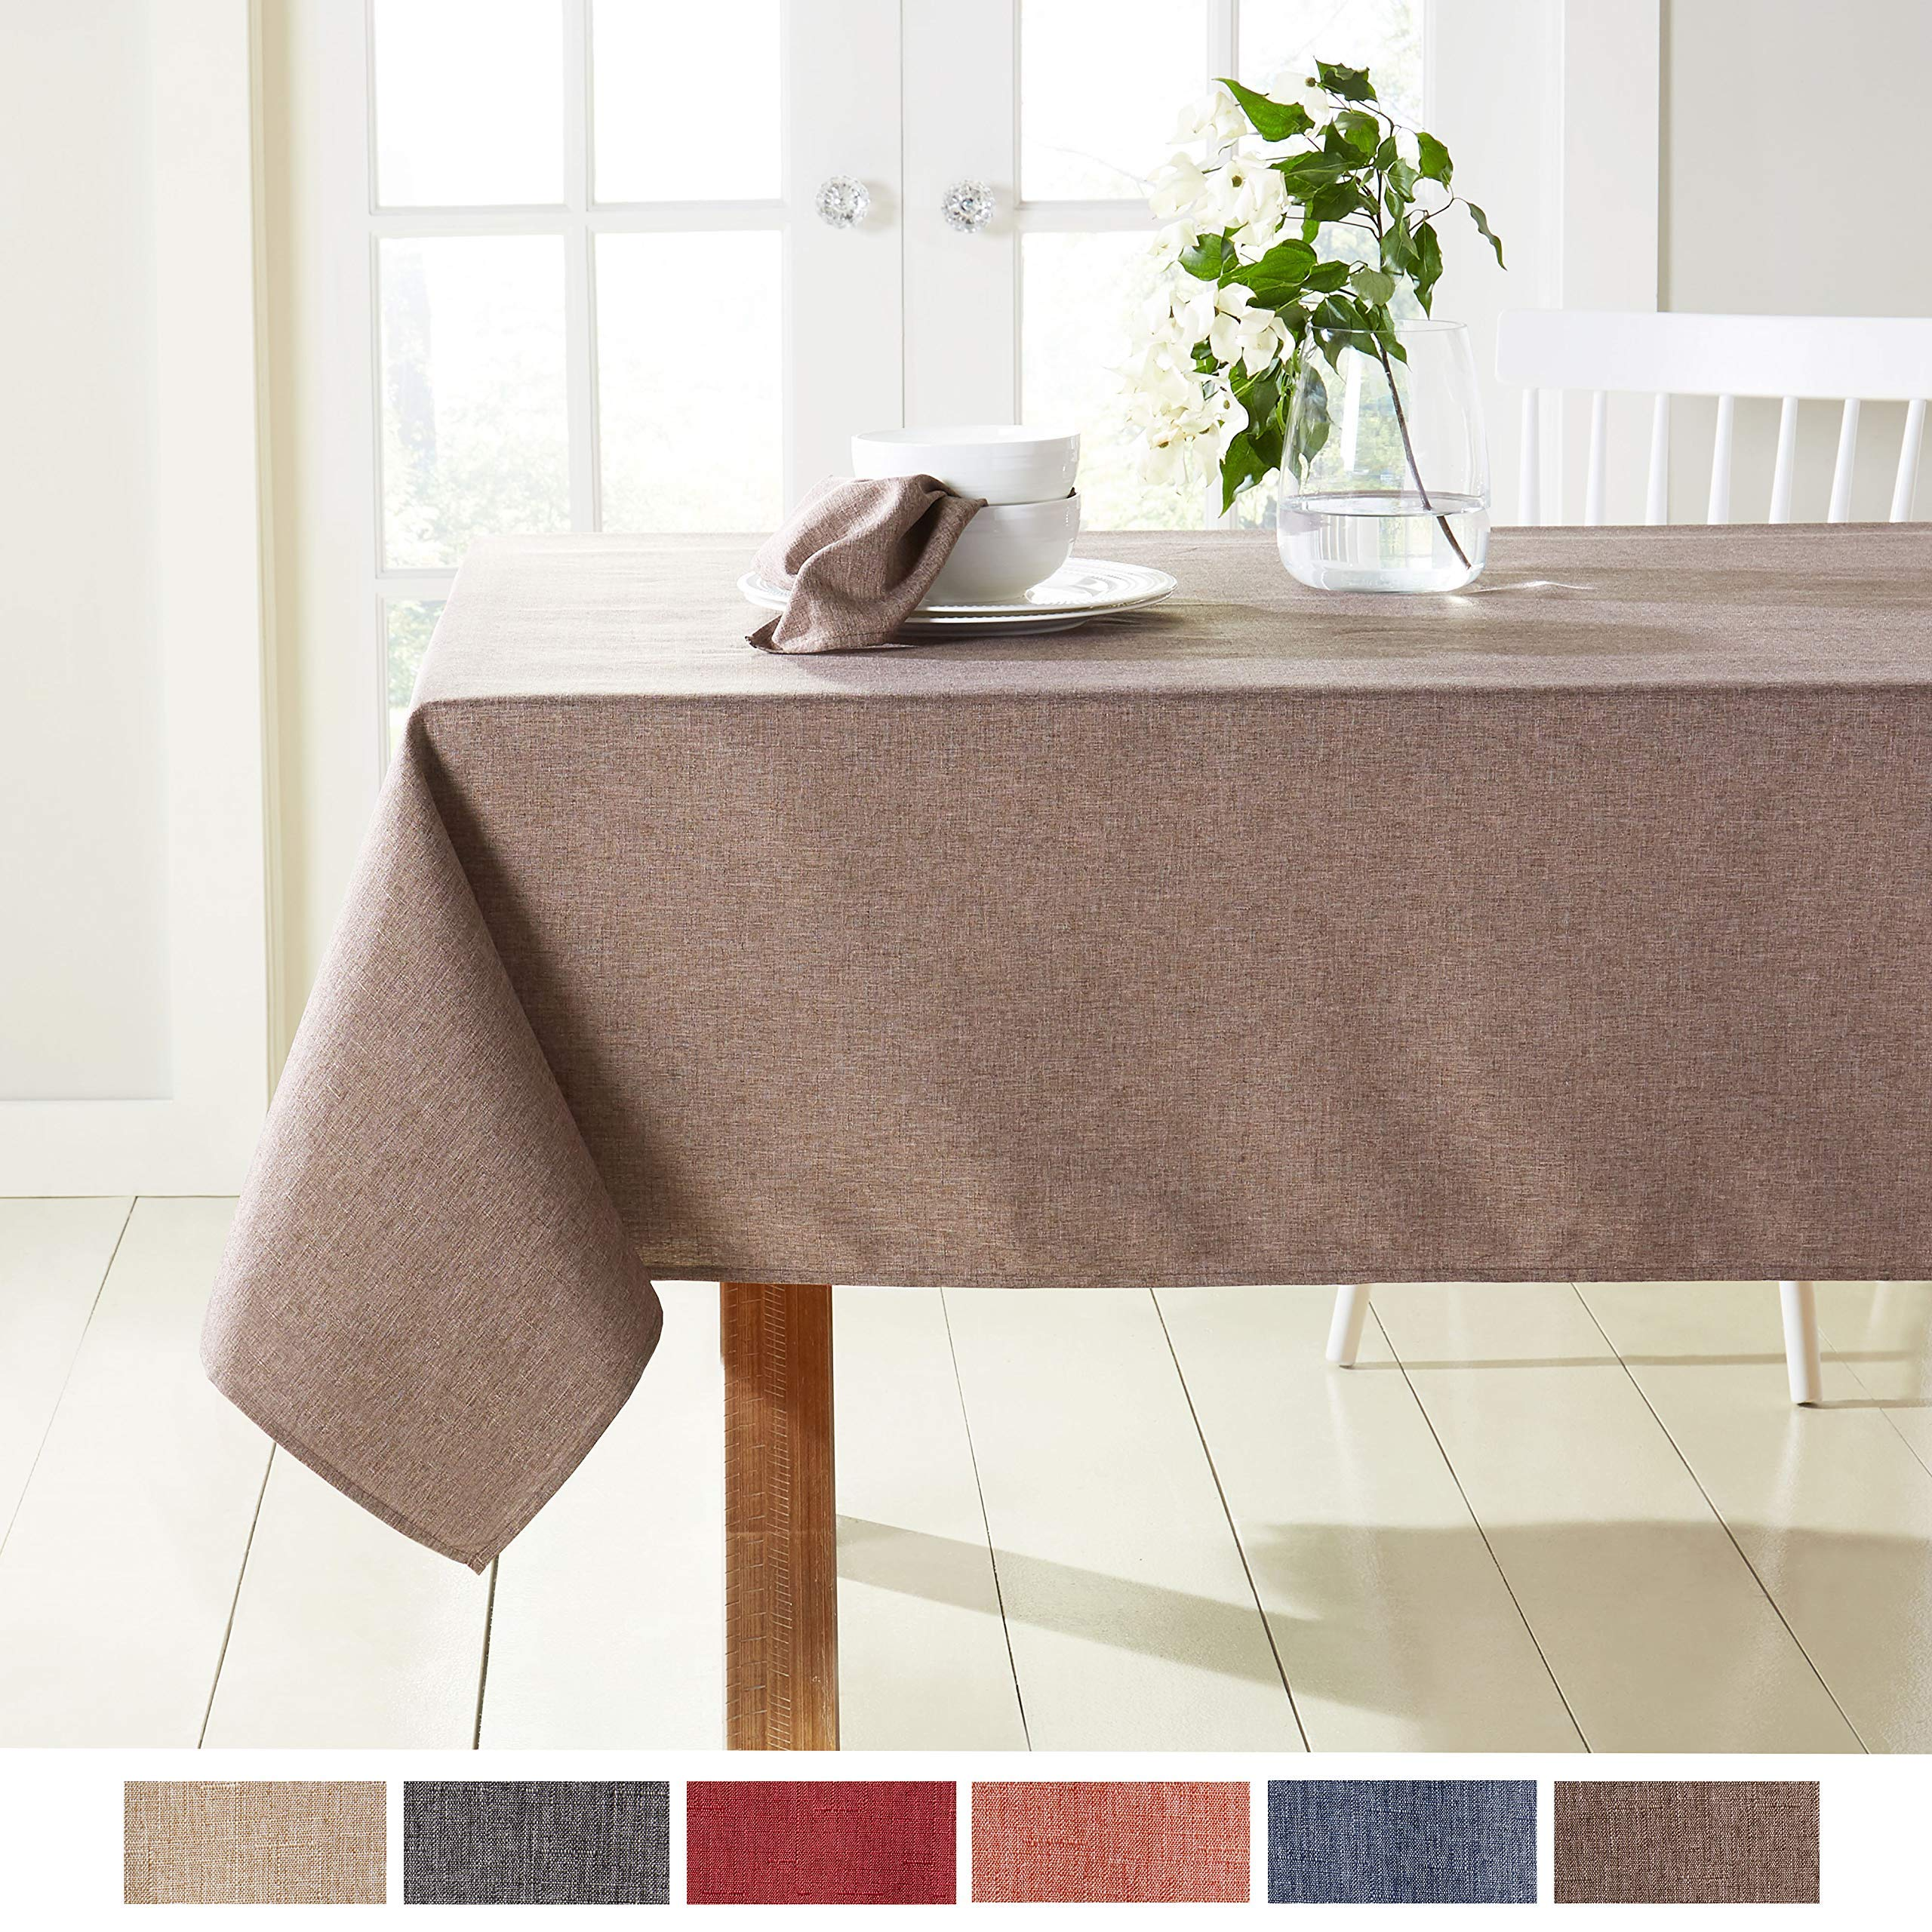 """Town & Country Living Somers Modern Farmhouse Tablecloth, Picnic/Indoor Outdoor/Stain Resistant/Machine Washable Polyester, 52""""x70"""" Rectangle Brown"""